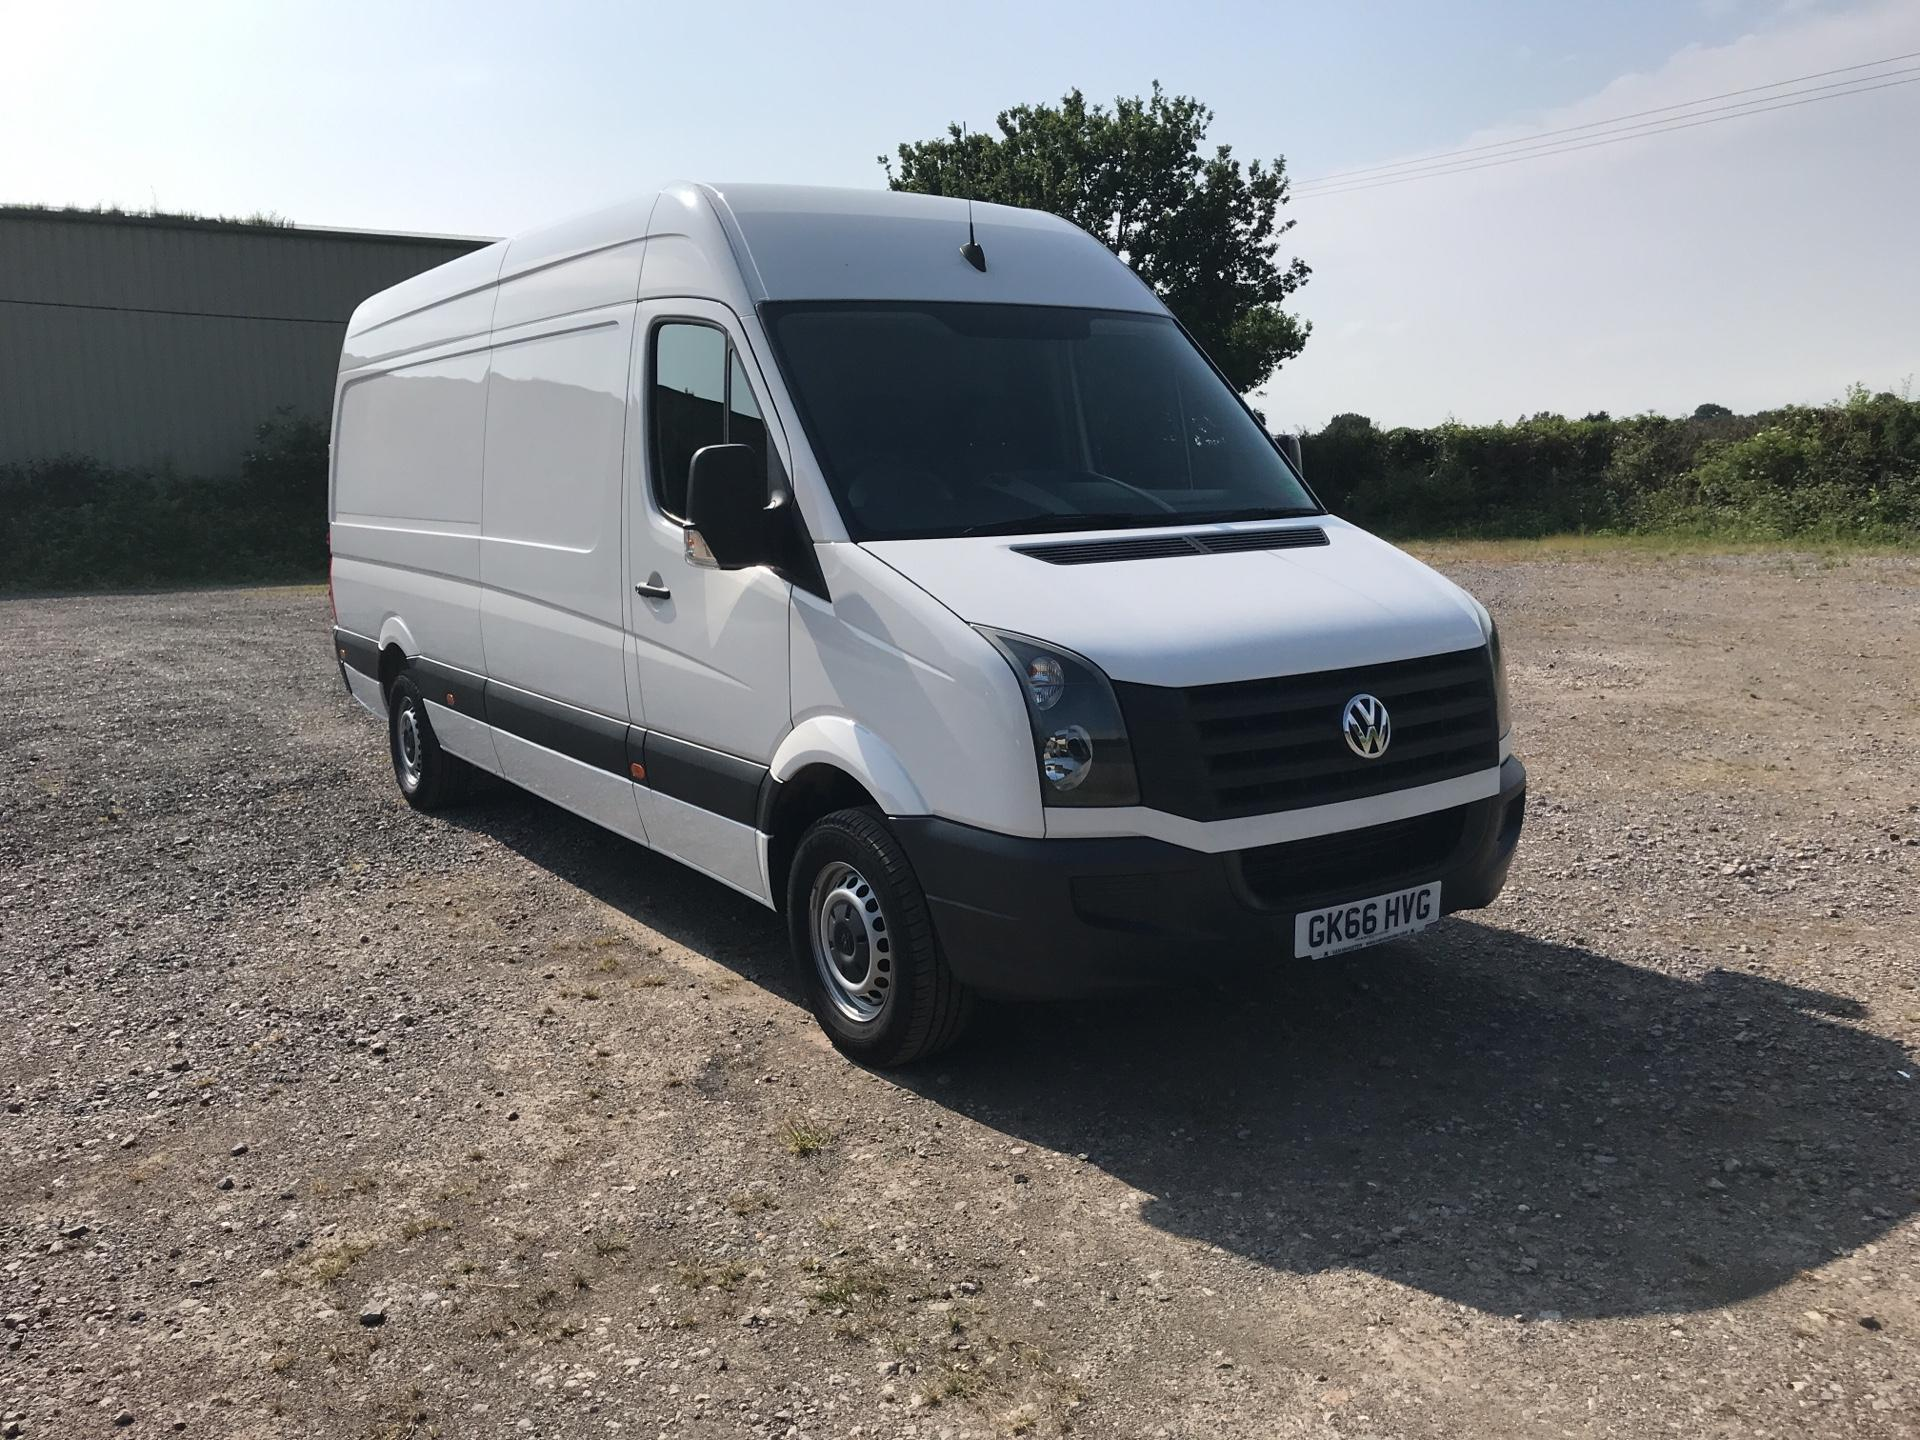 2016 Volkswagen Crafter 2.0 Tdi 136Ps High Roof Van (GK66HVG)